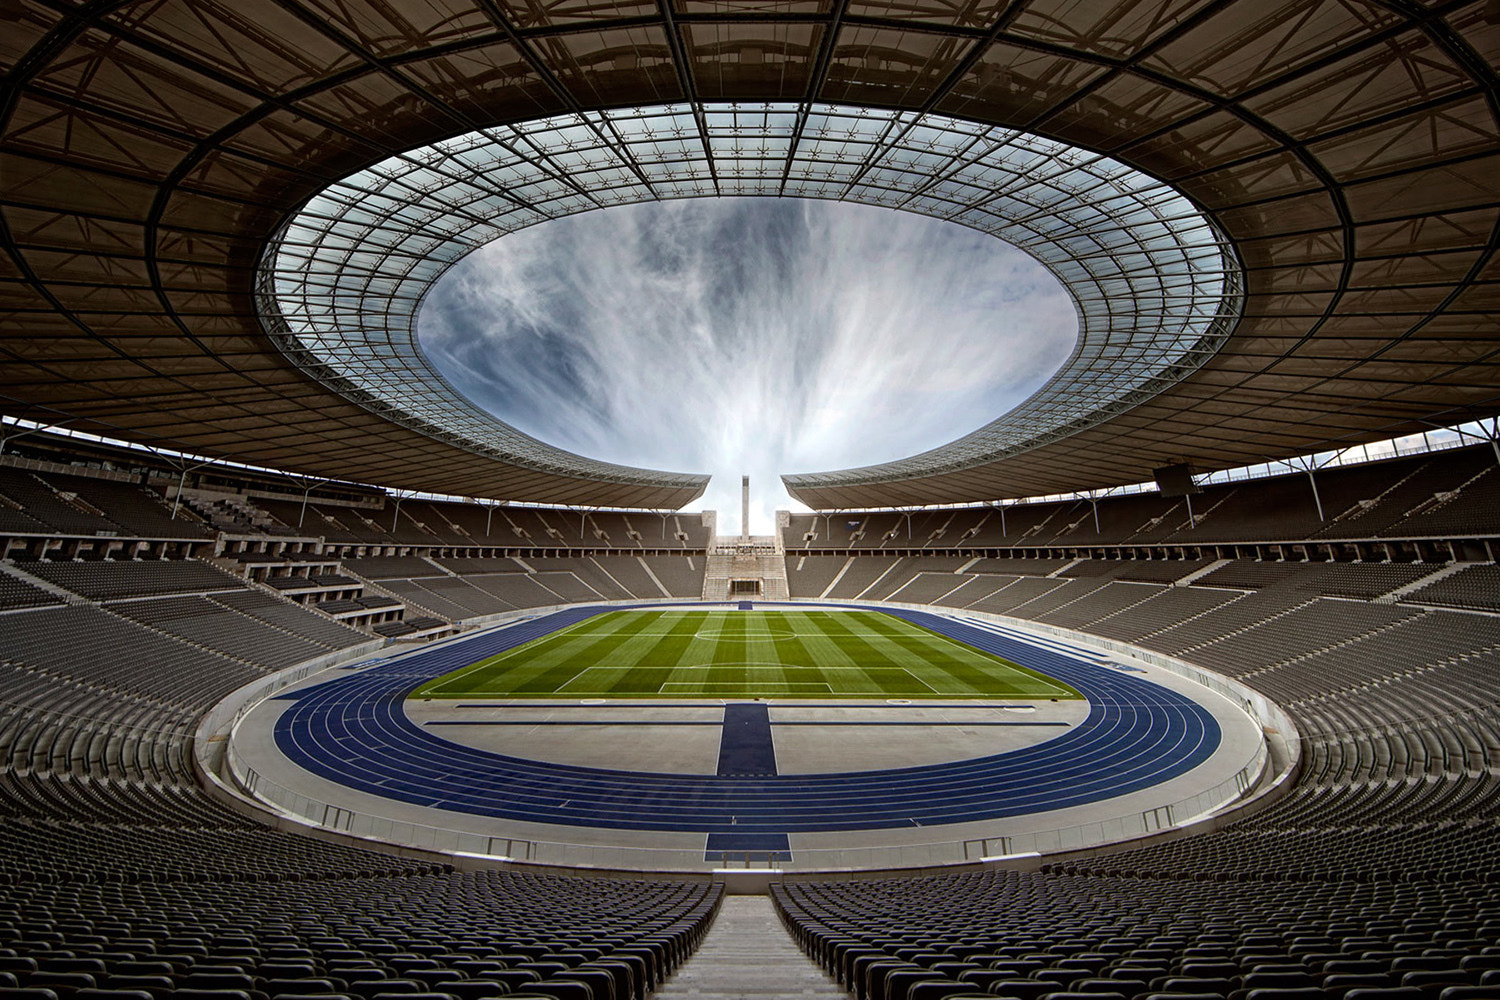 Photograph Olympia Stadion Berlin by Glenn Meling on 500px